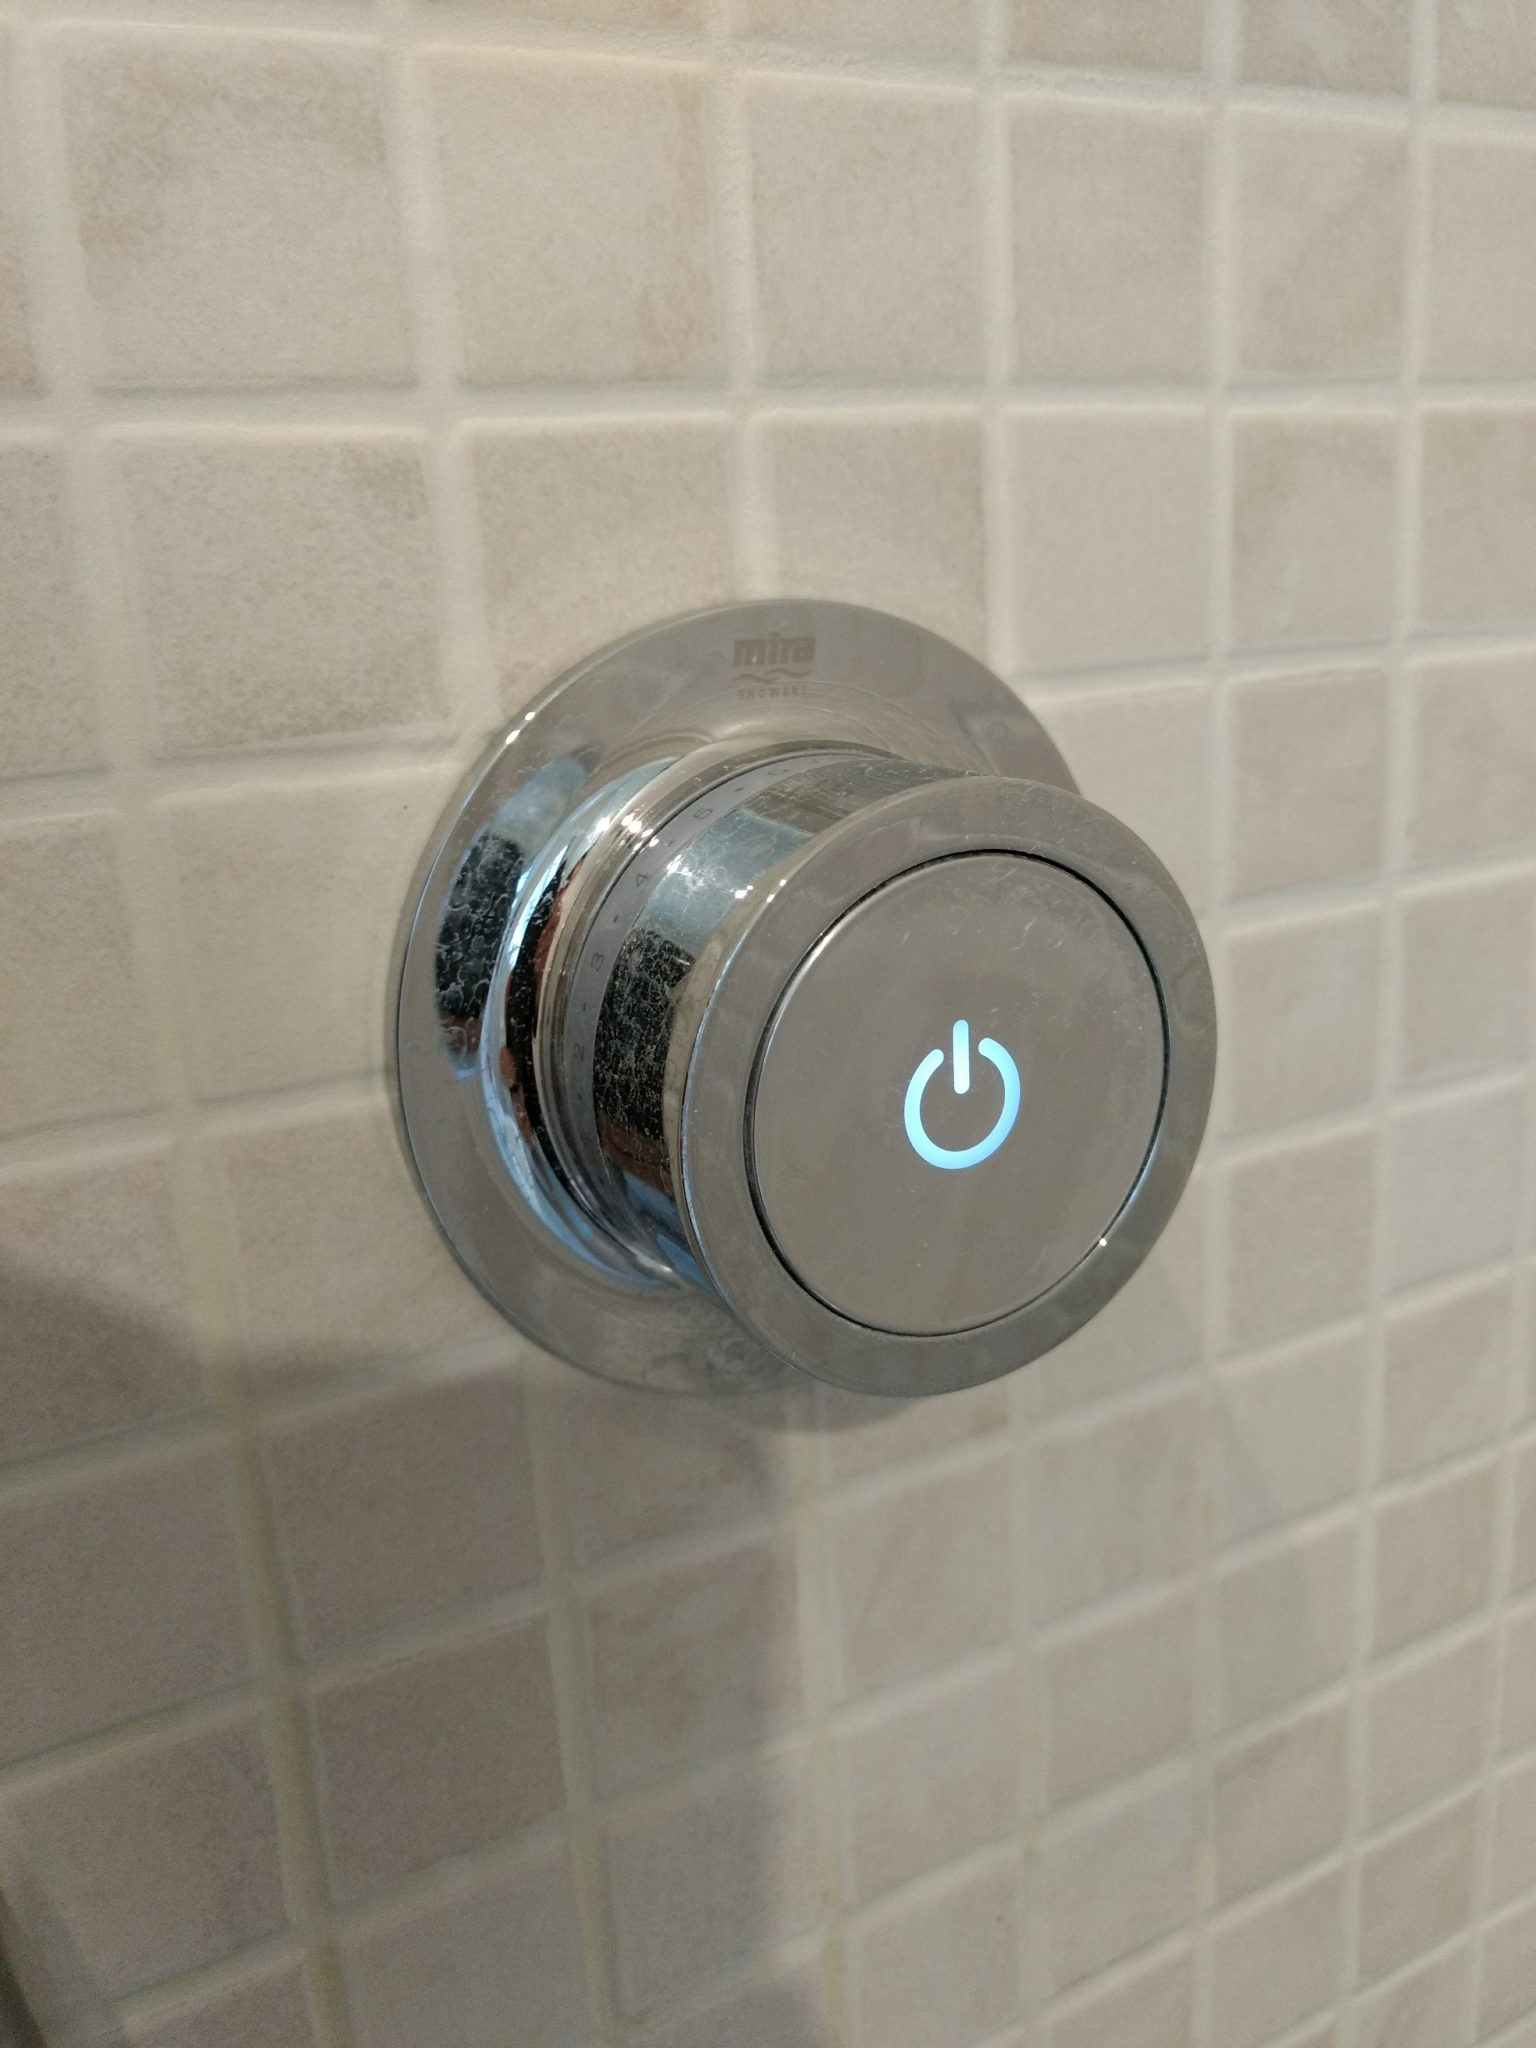 Digital shower controller